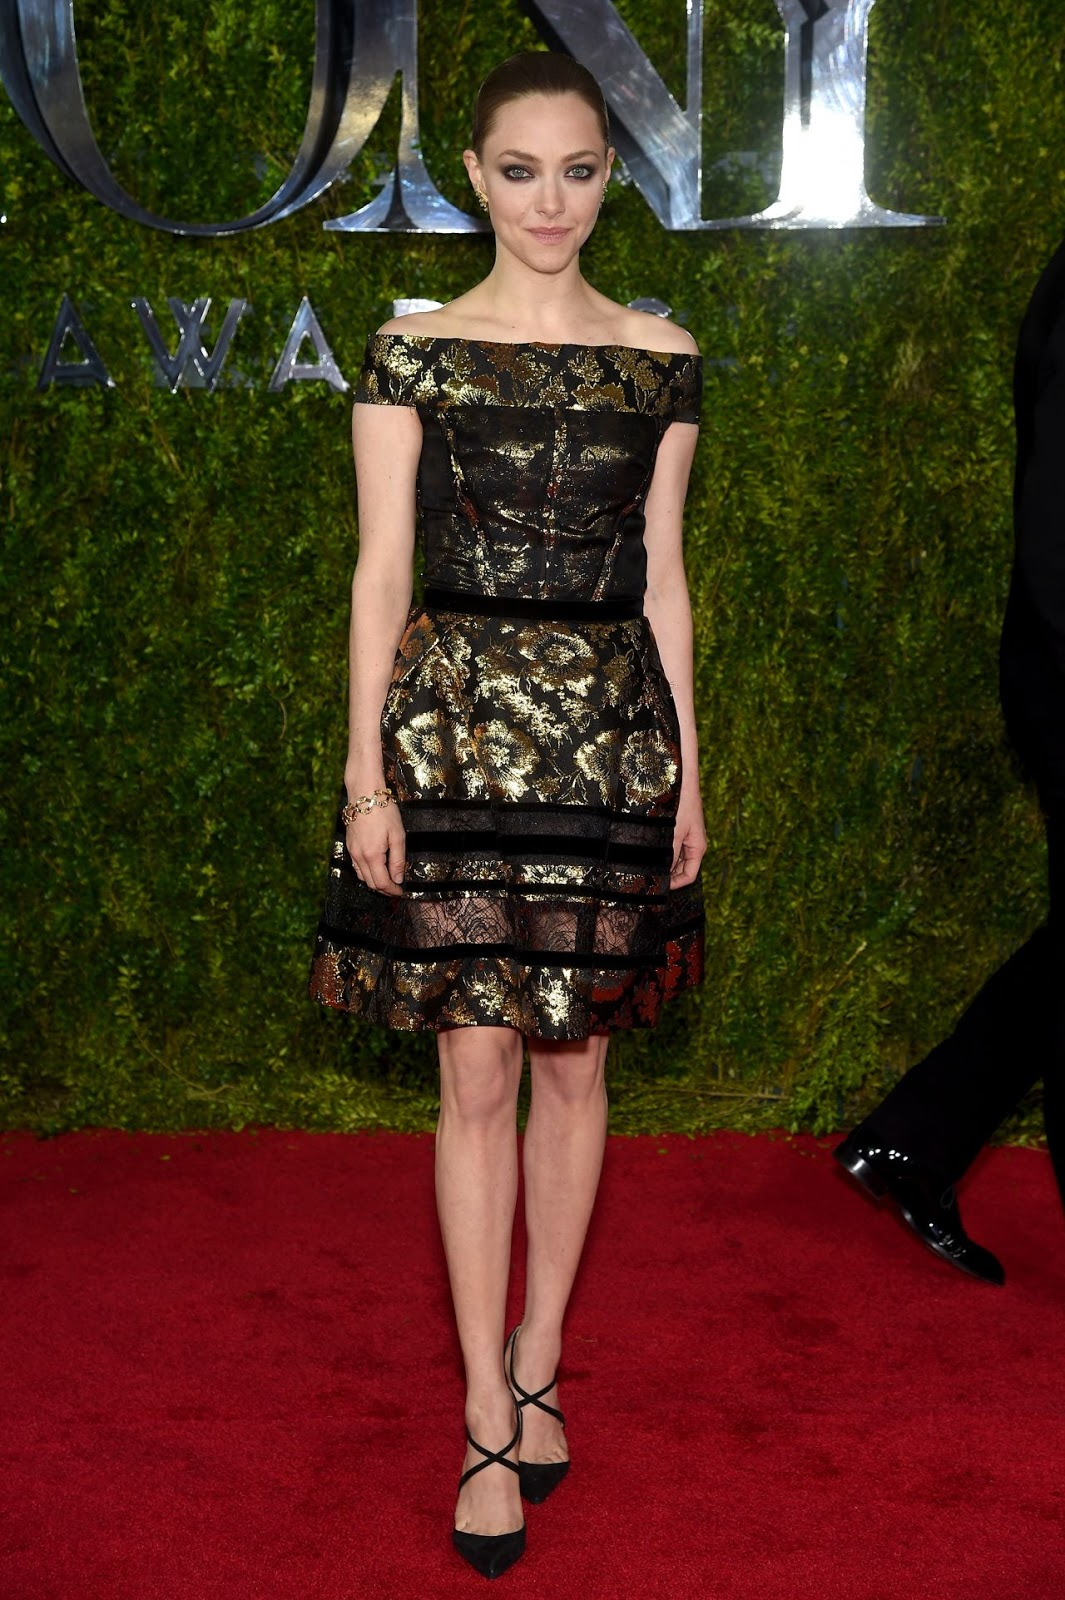 Amanda Seyfried Is Stunning In An Off Shoulder Dress At